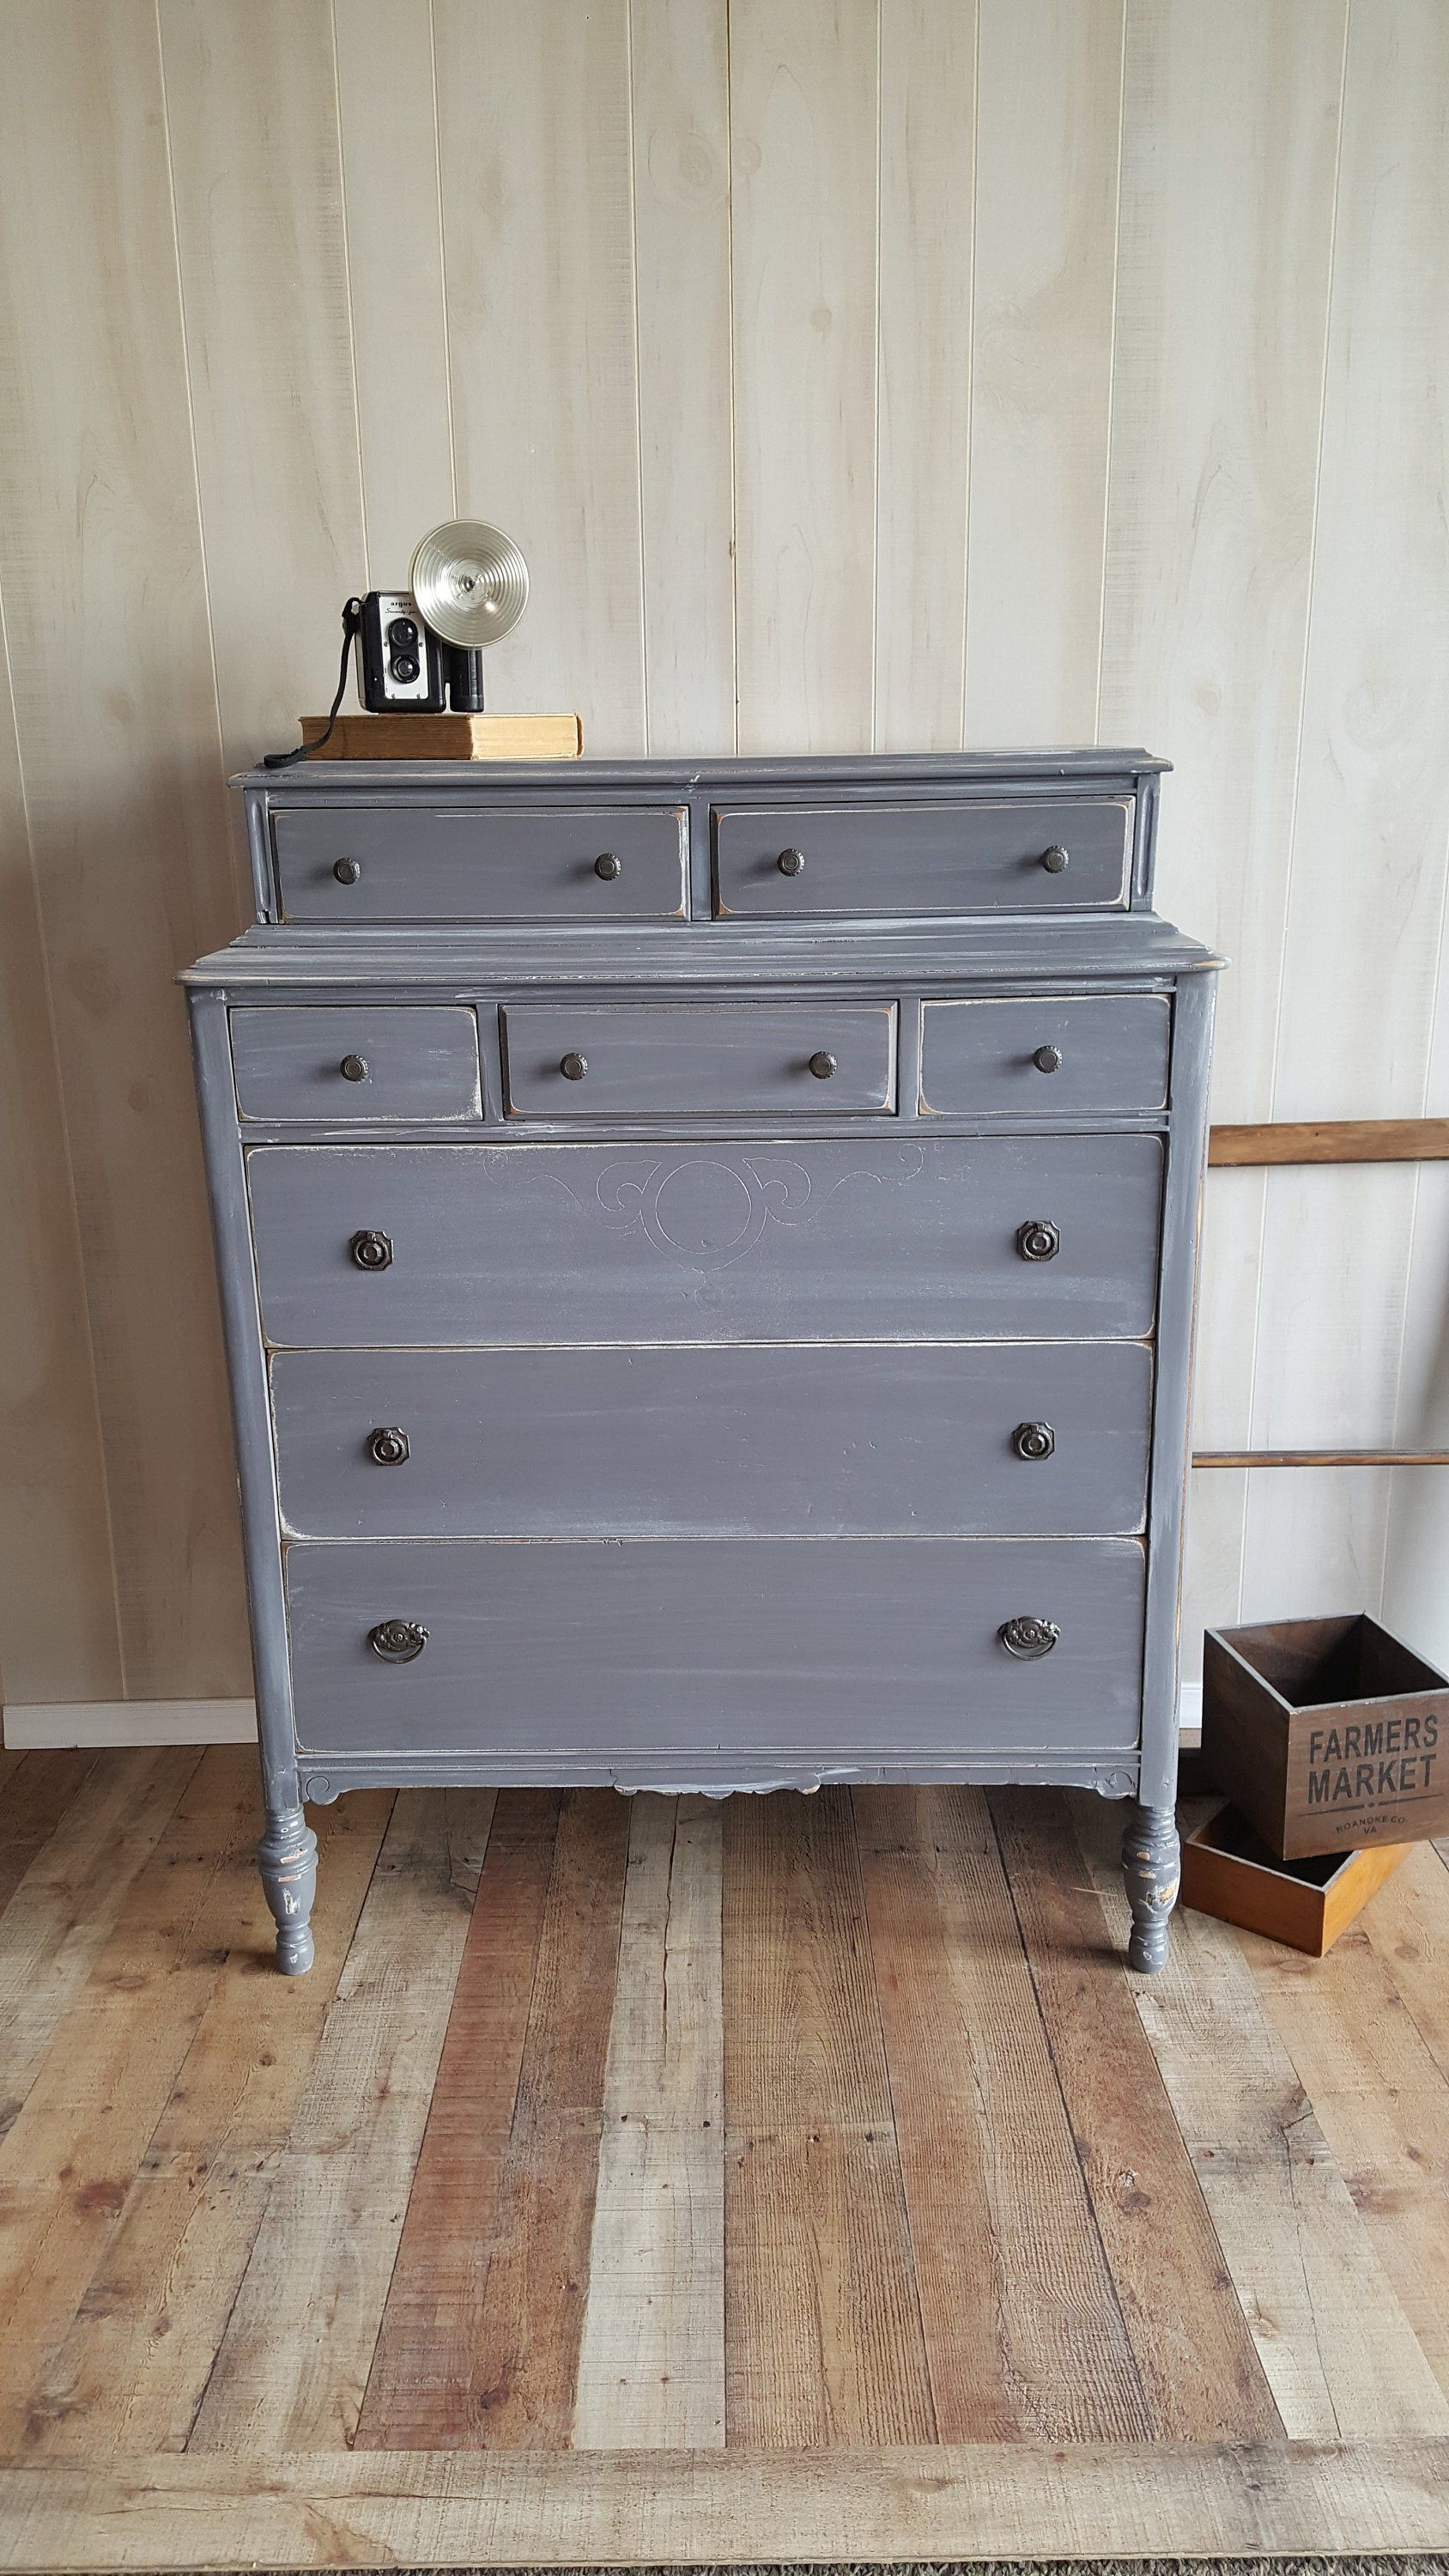 Vintage French Dresser Chest This Dresser Measures 38 Wide 20 Deep And 49 5 Tall This Dresser Has Vintage Painted Furniture Vintage Shabby Chic Shabby Chic [ 3000 x 1688 Pixel ]